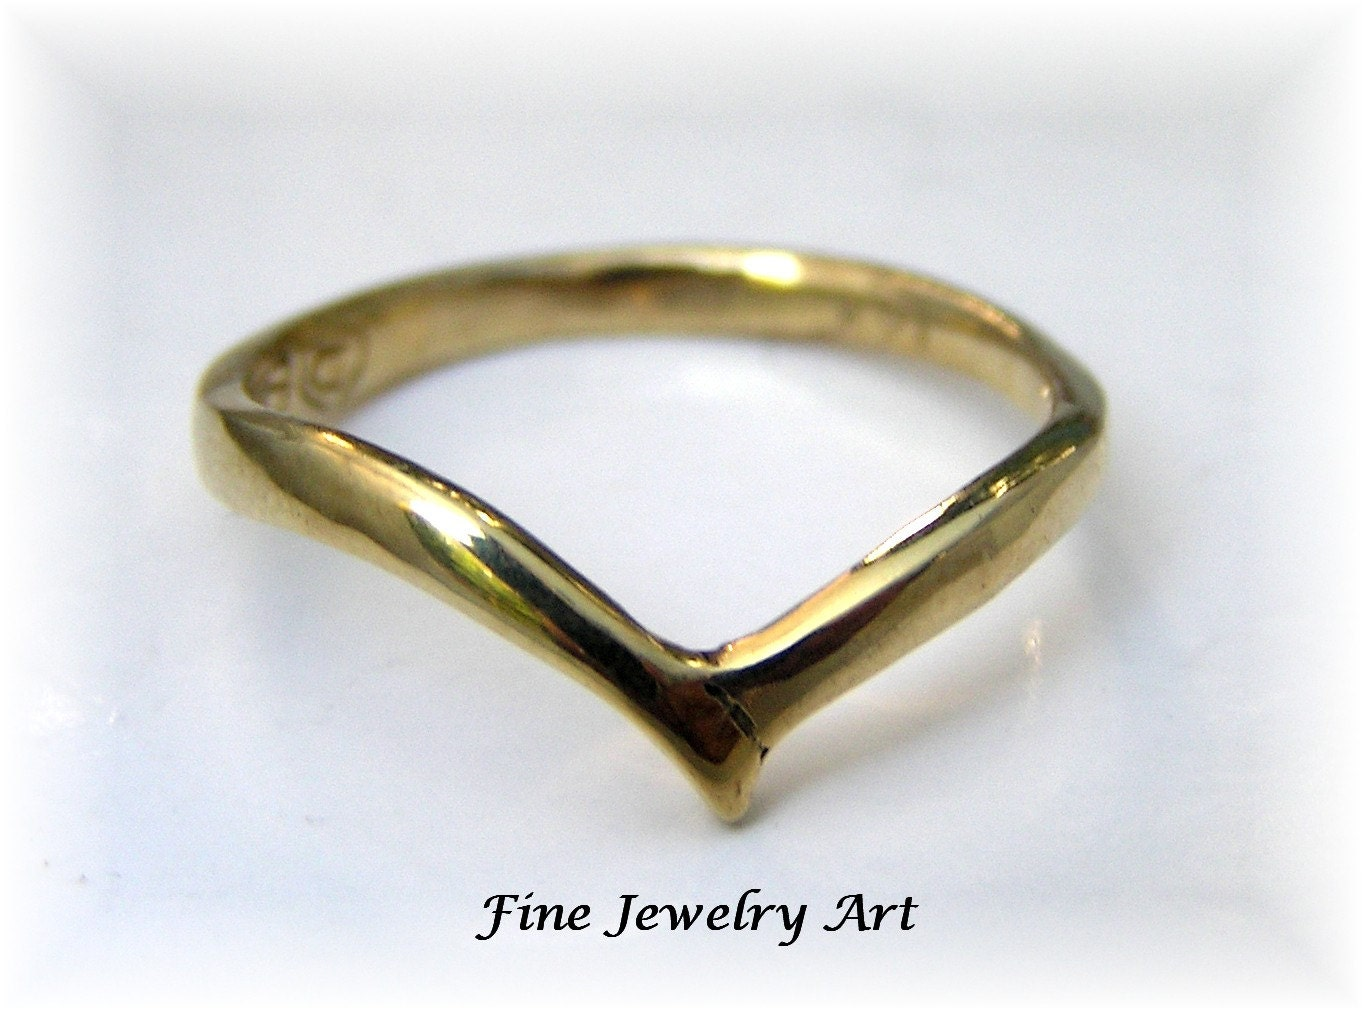 Fine Jewelry Personalized V-Shaped Ring 9L7wlX